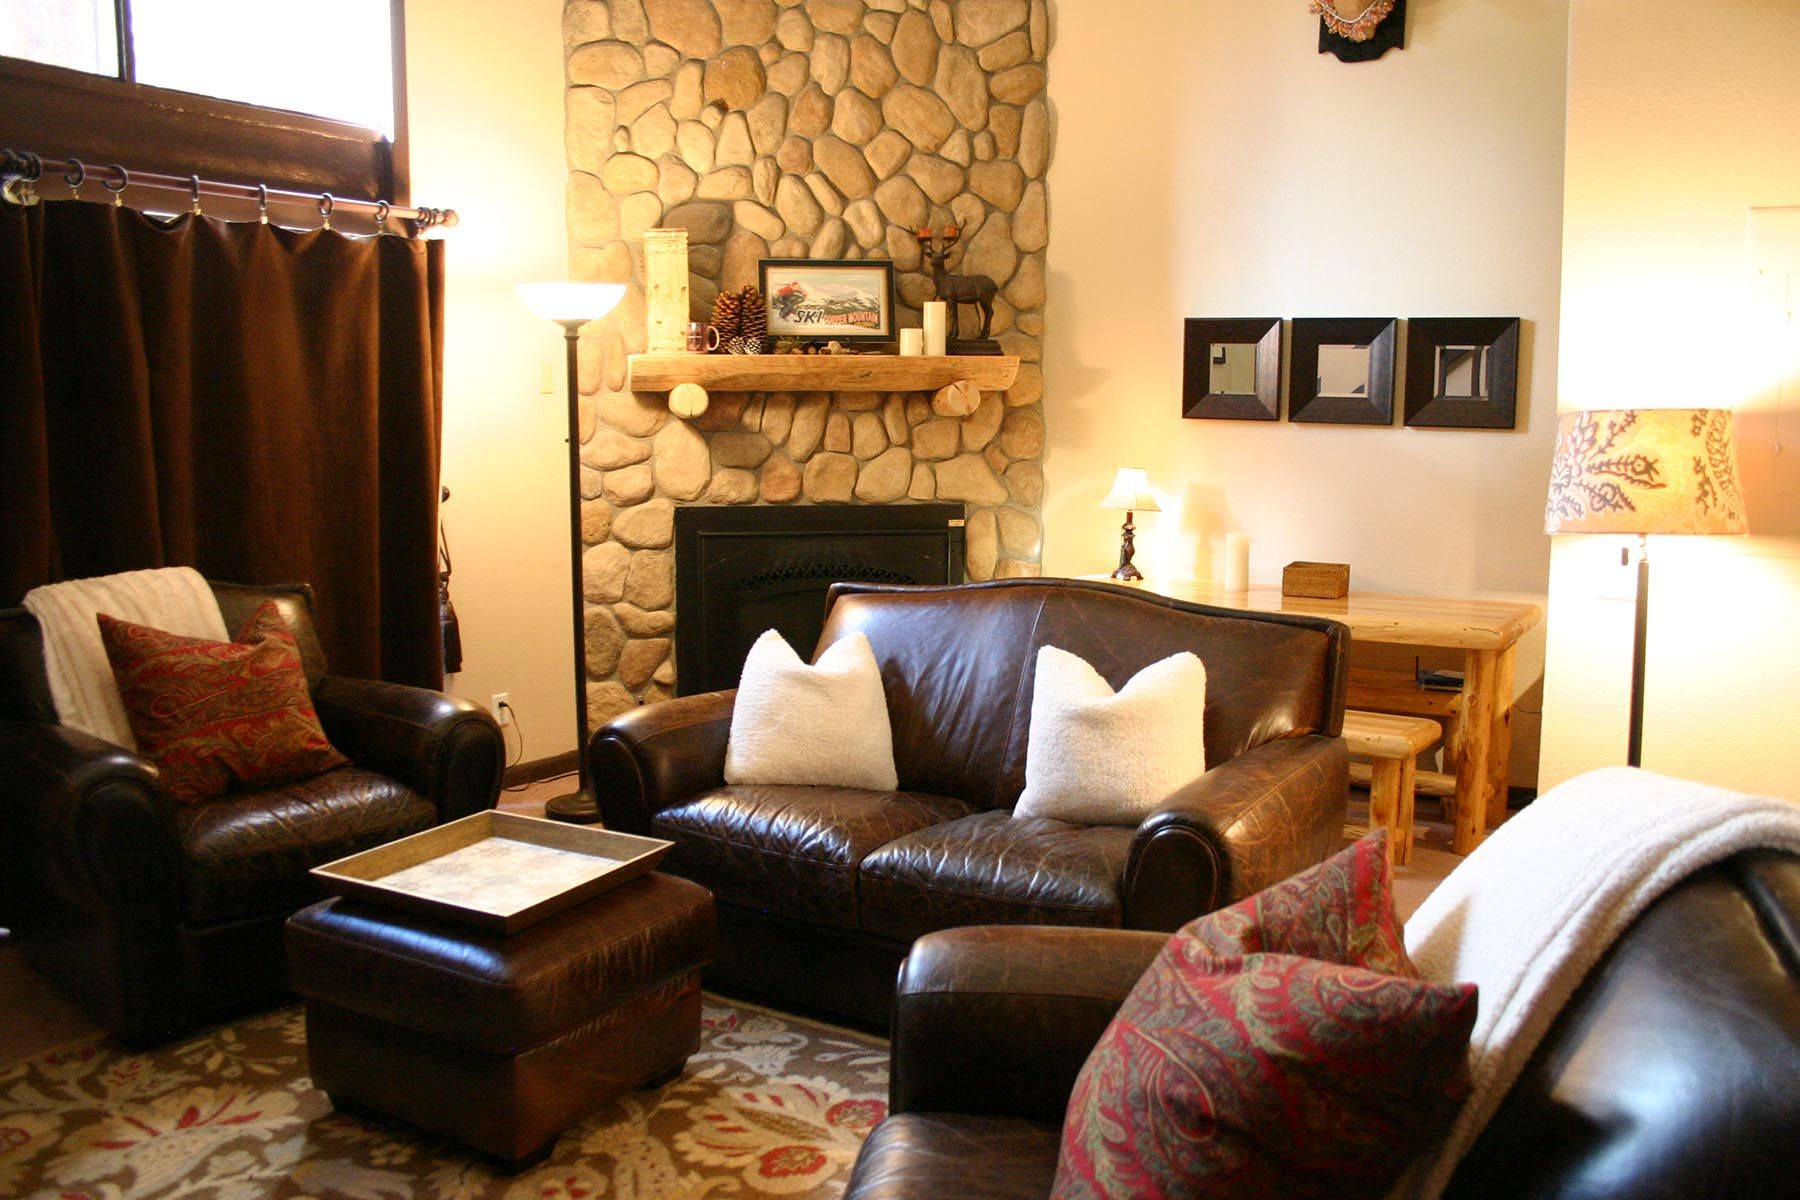 Copper mountain lodging three bedroom cozy is nice but its better